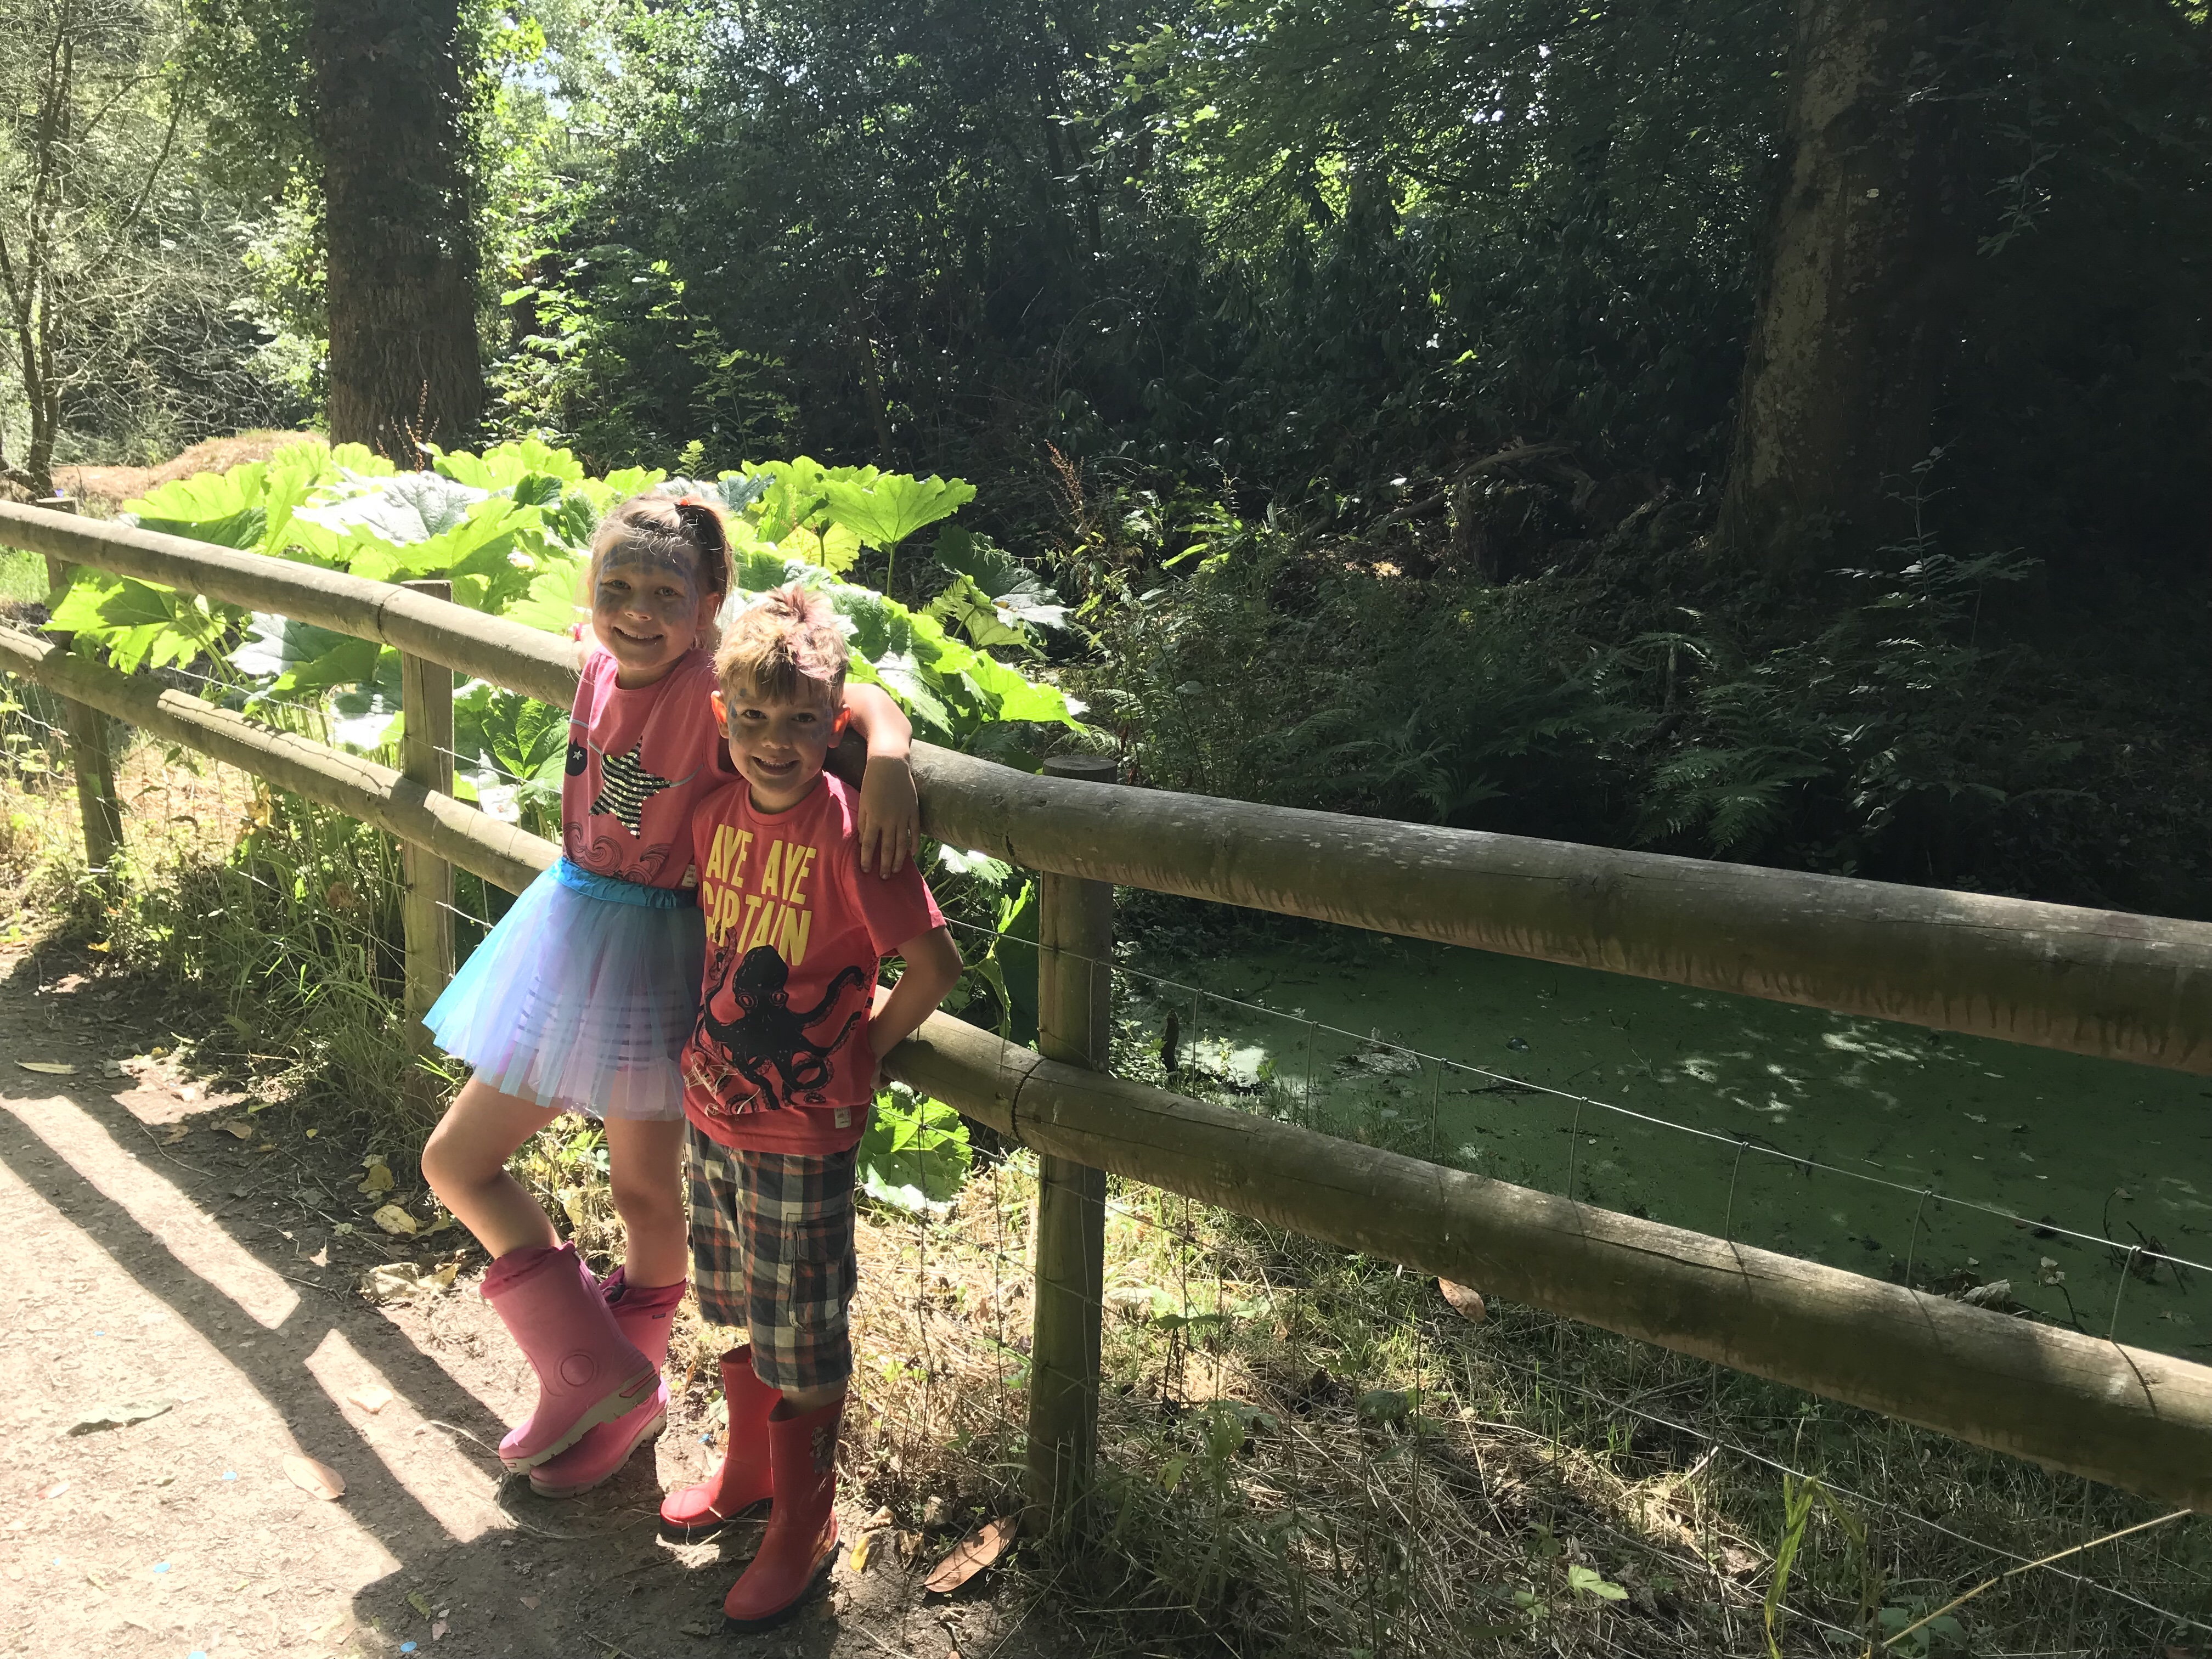 We daughter stands by a wooden fence in a tutu with blue facepaint, one arm slung around her little brothers' neck. Both are smiling angelically. It is a sunny day and they are in a beautiful wood. A blog post about warring siblings.